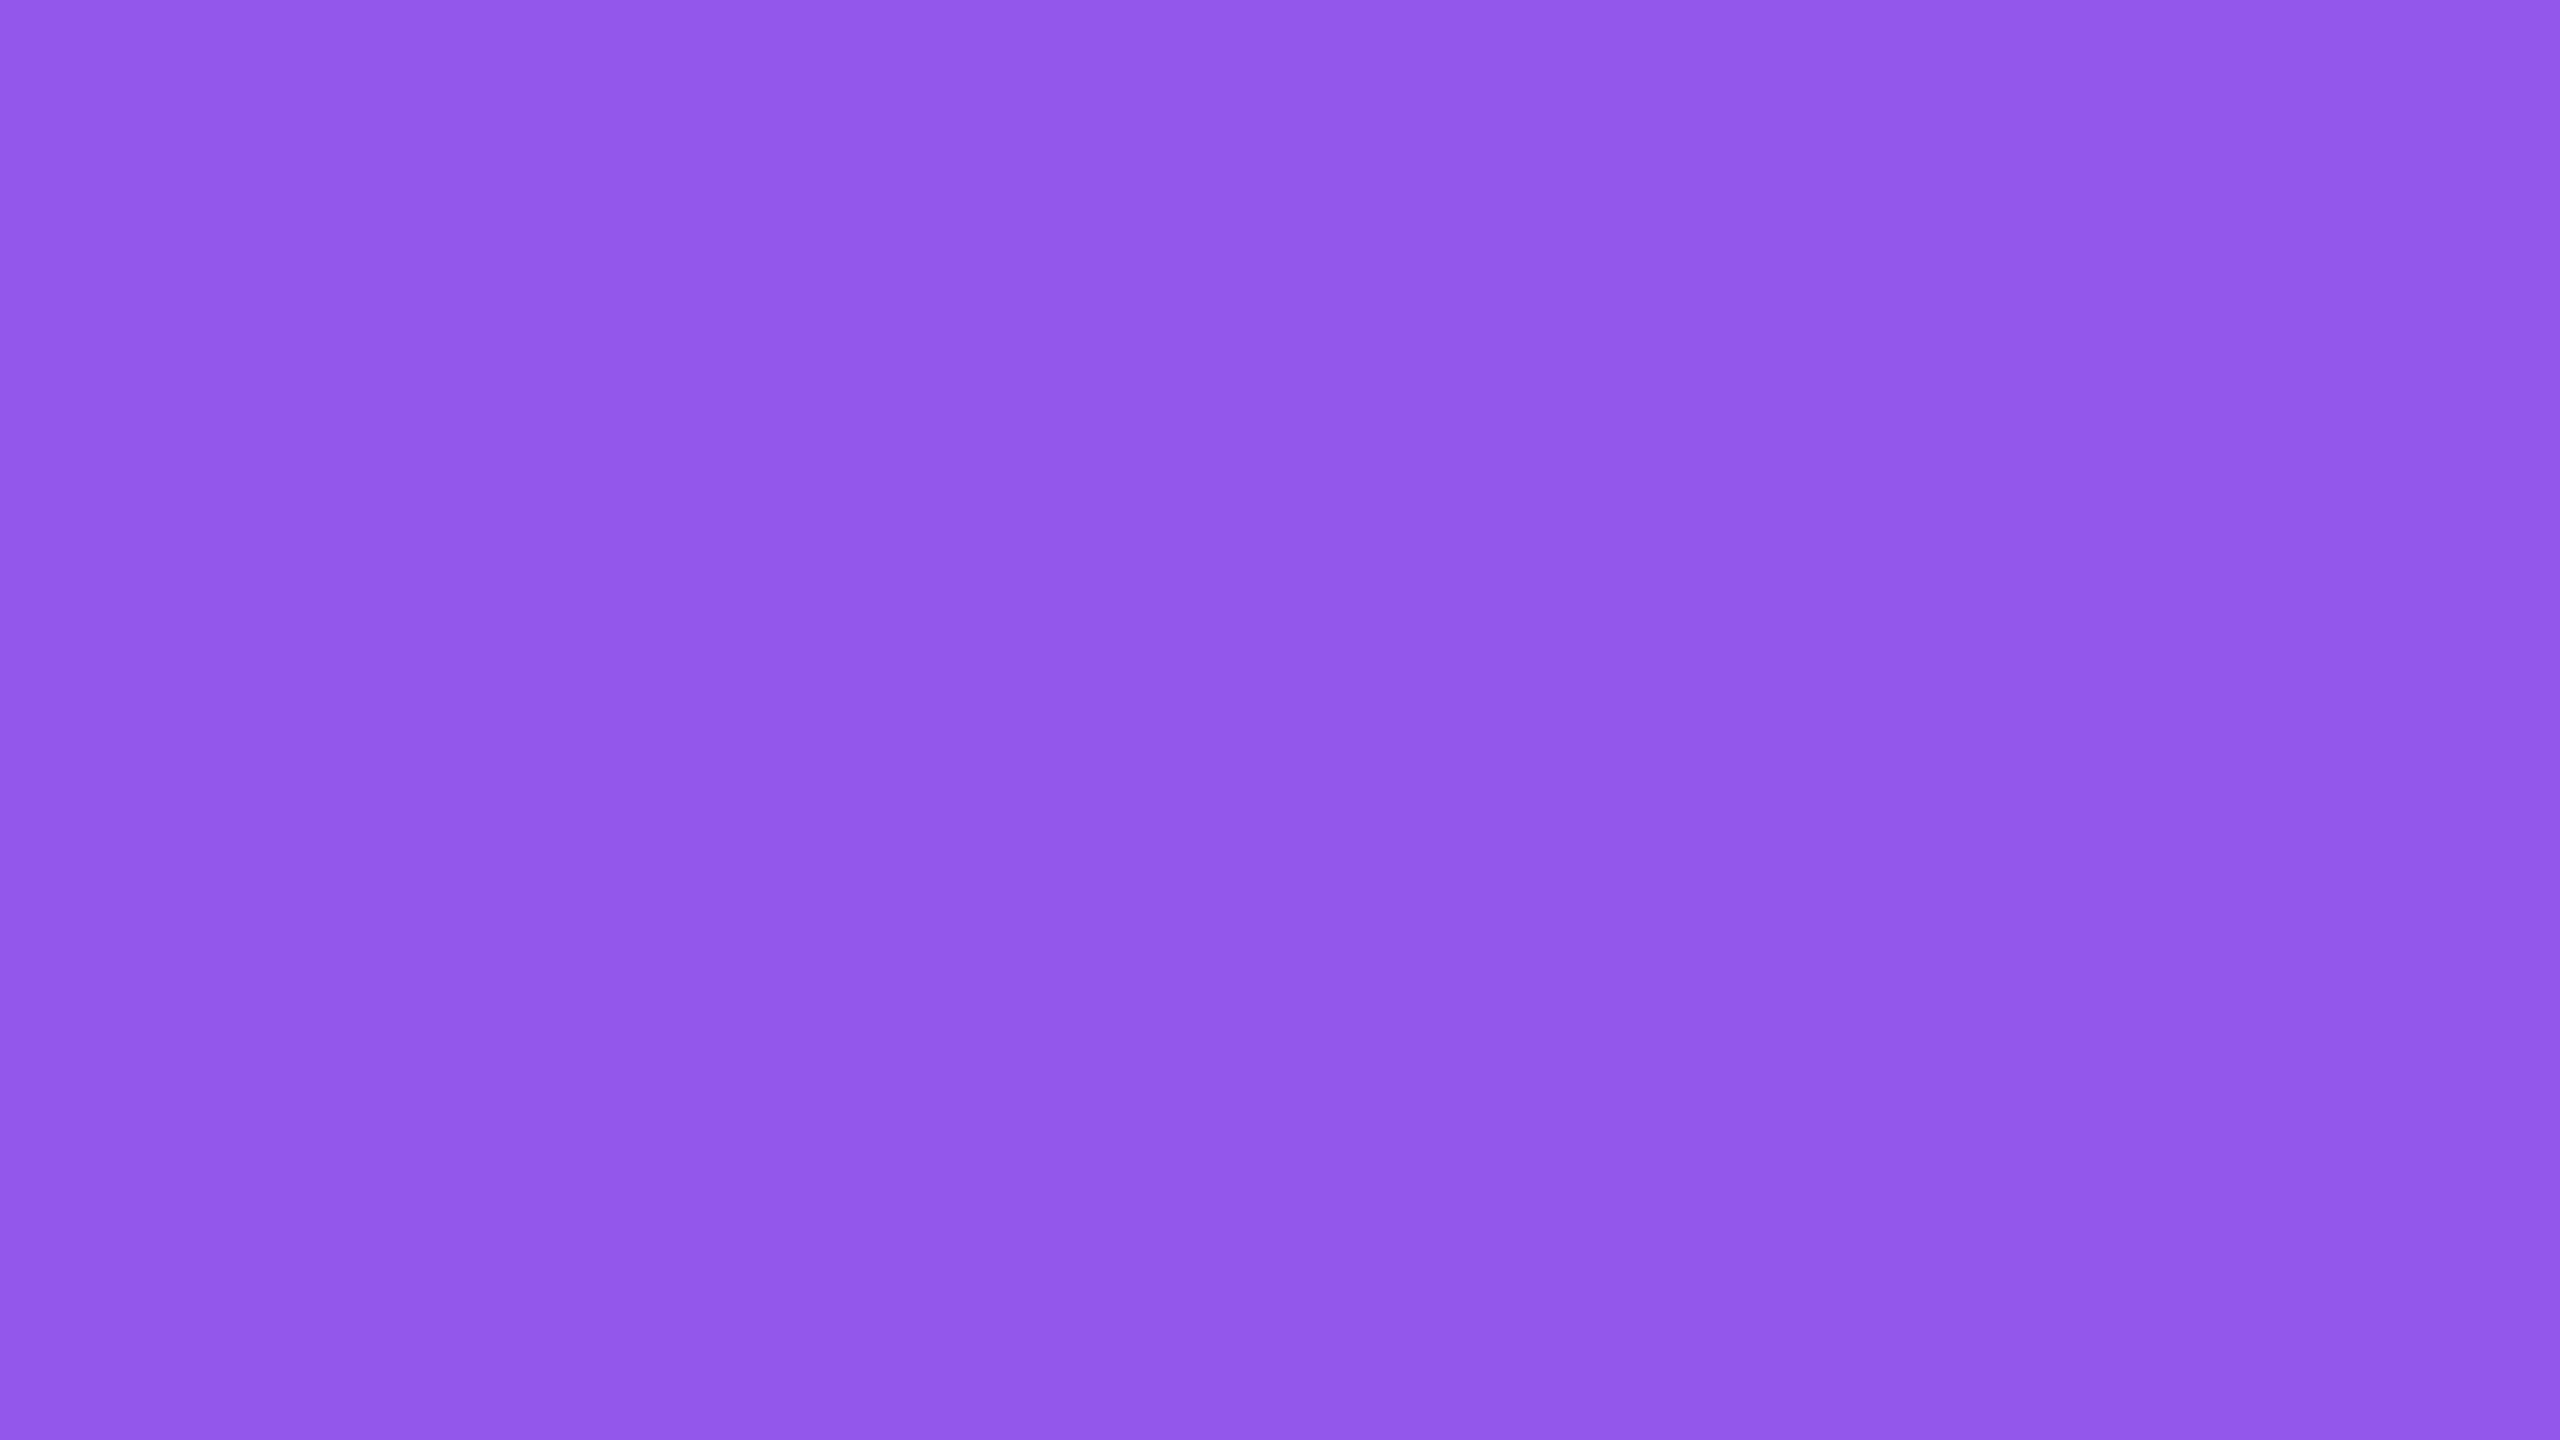 2560x1440 Lavender Indigo Solid Color Background